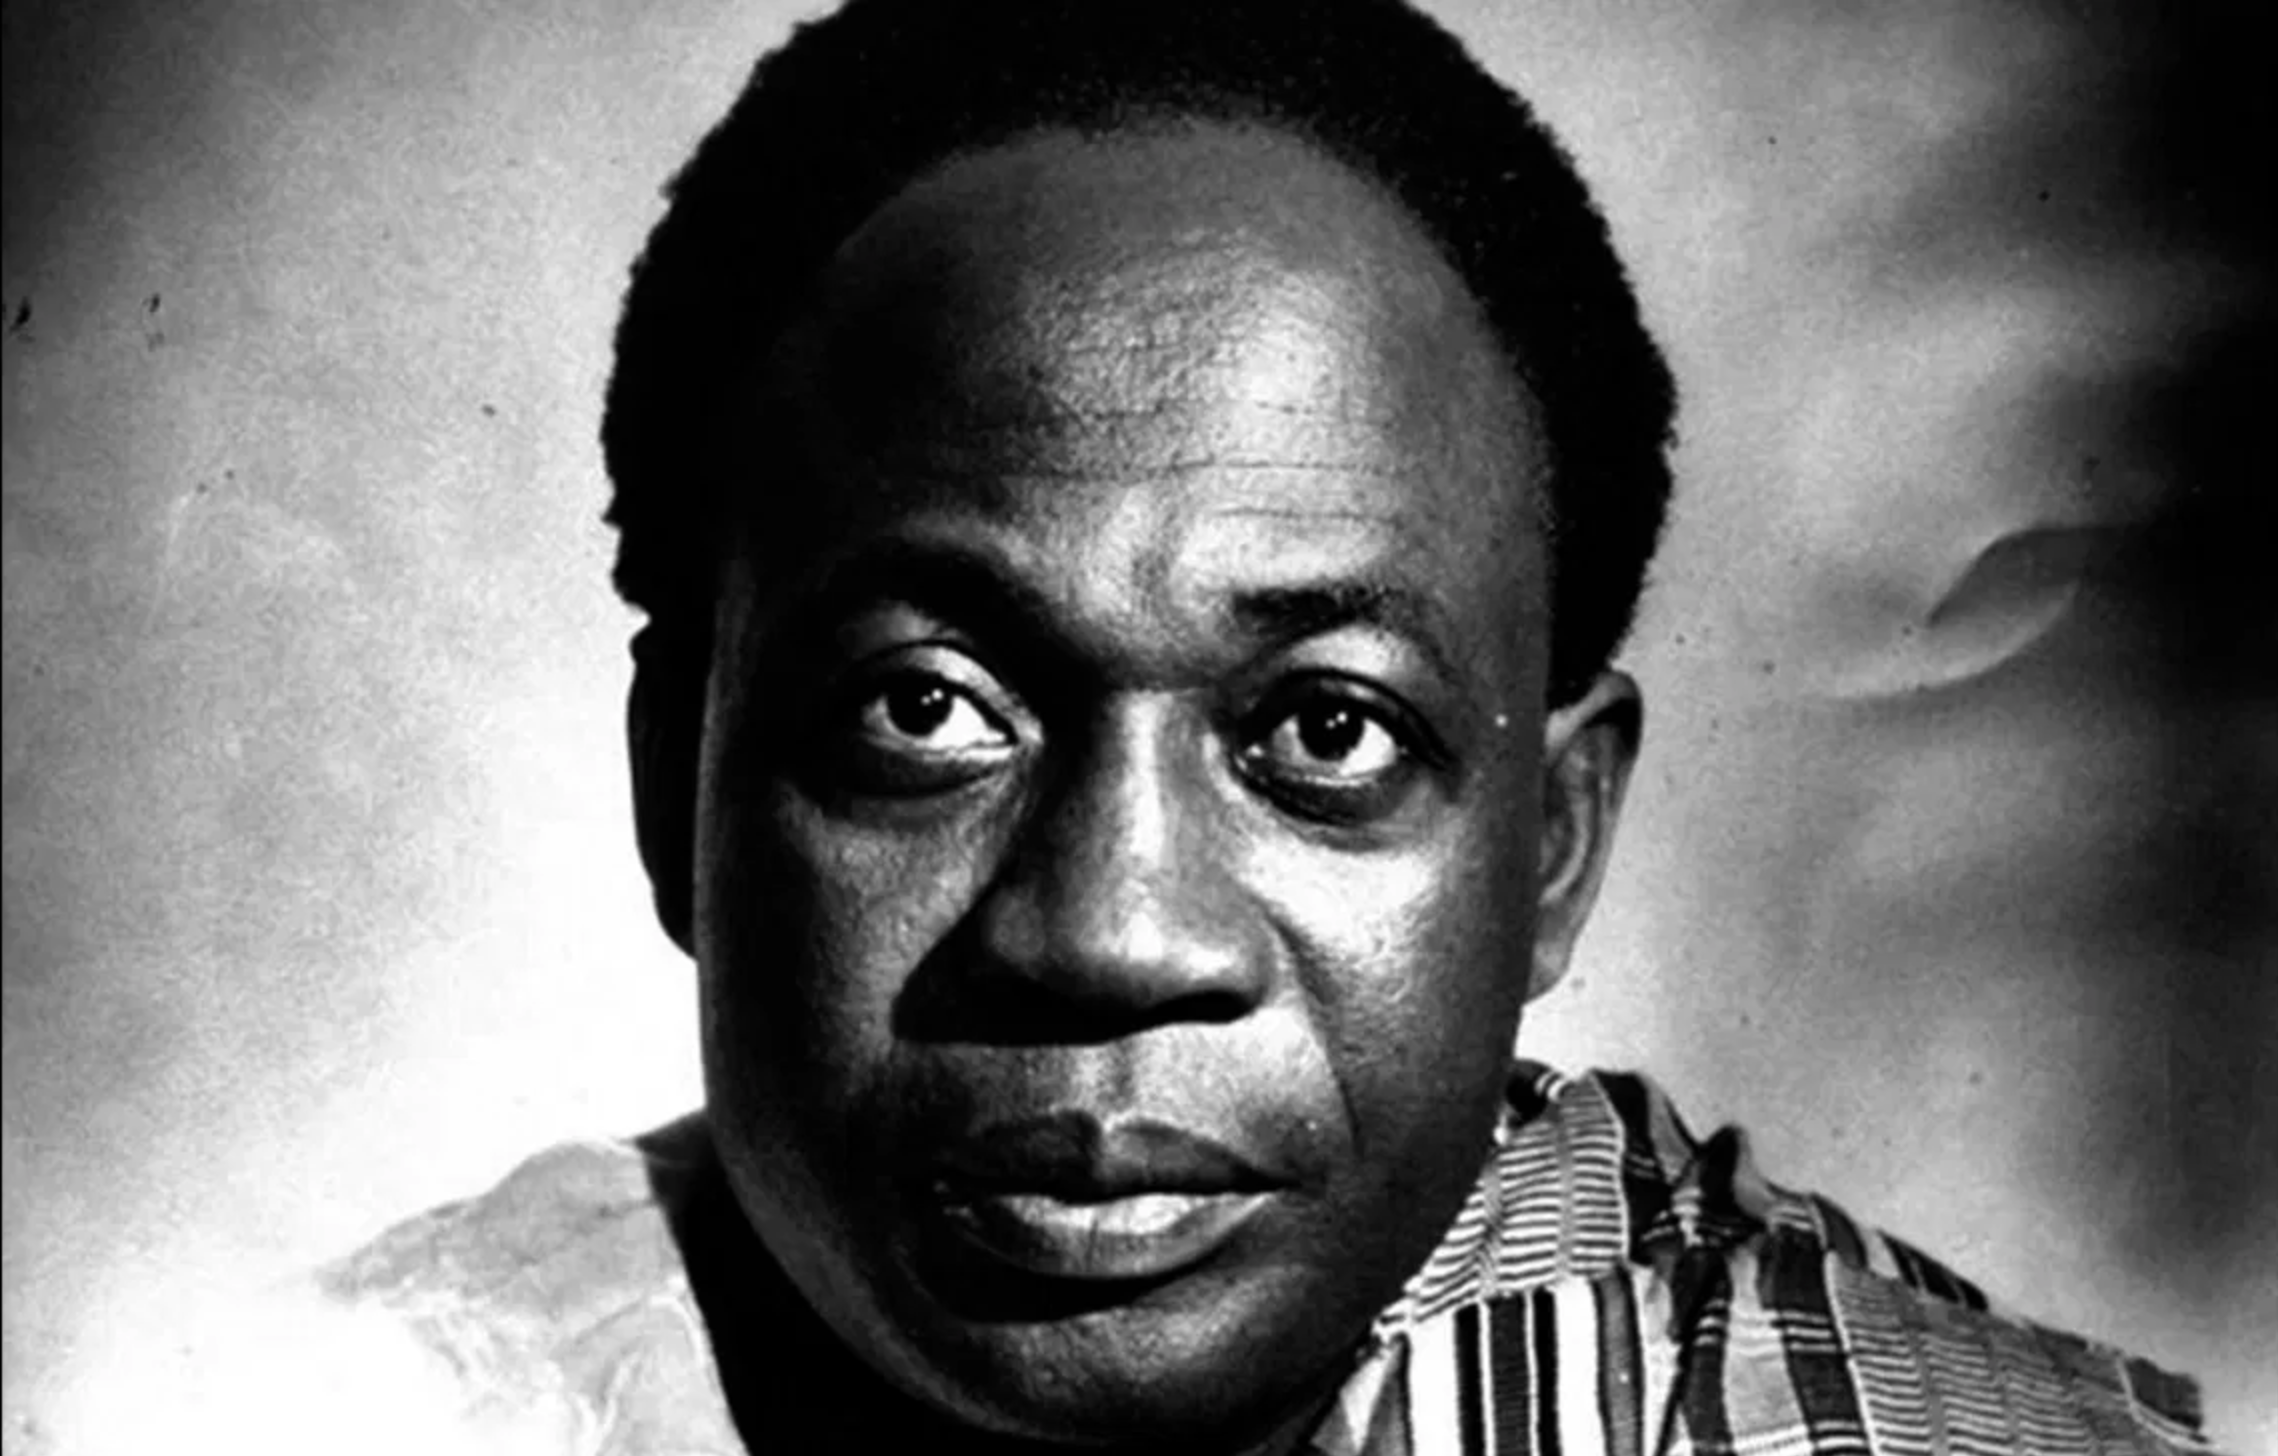 Choice of Ghana as host of AfCFTA Secretariat is a fitting tribute to Kwame Nkrumah